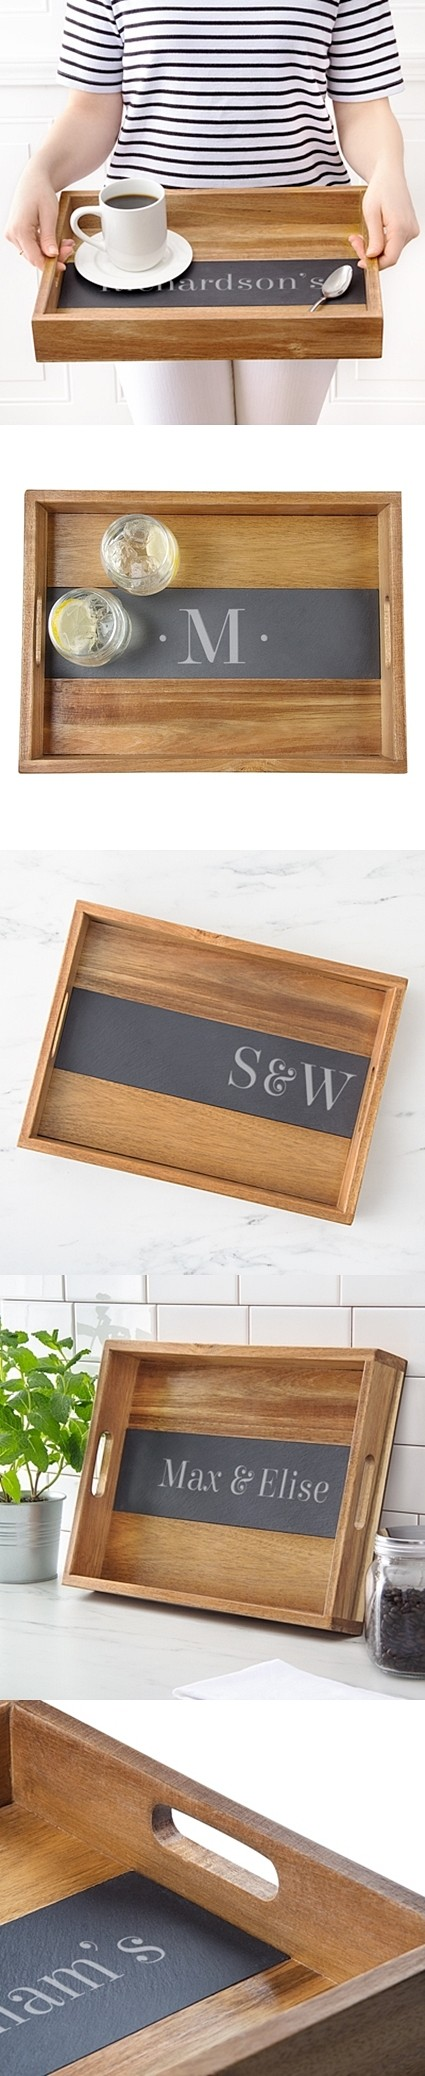 Cathy's Concepts Personalized Acacia-Wood Tray with Slate Insert